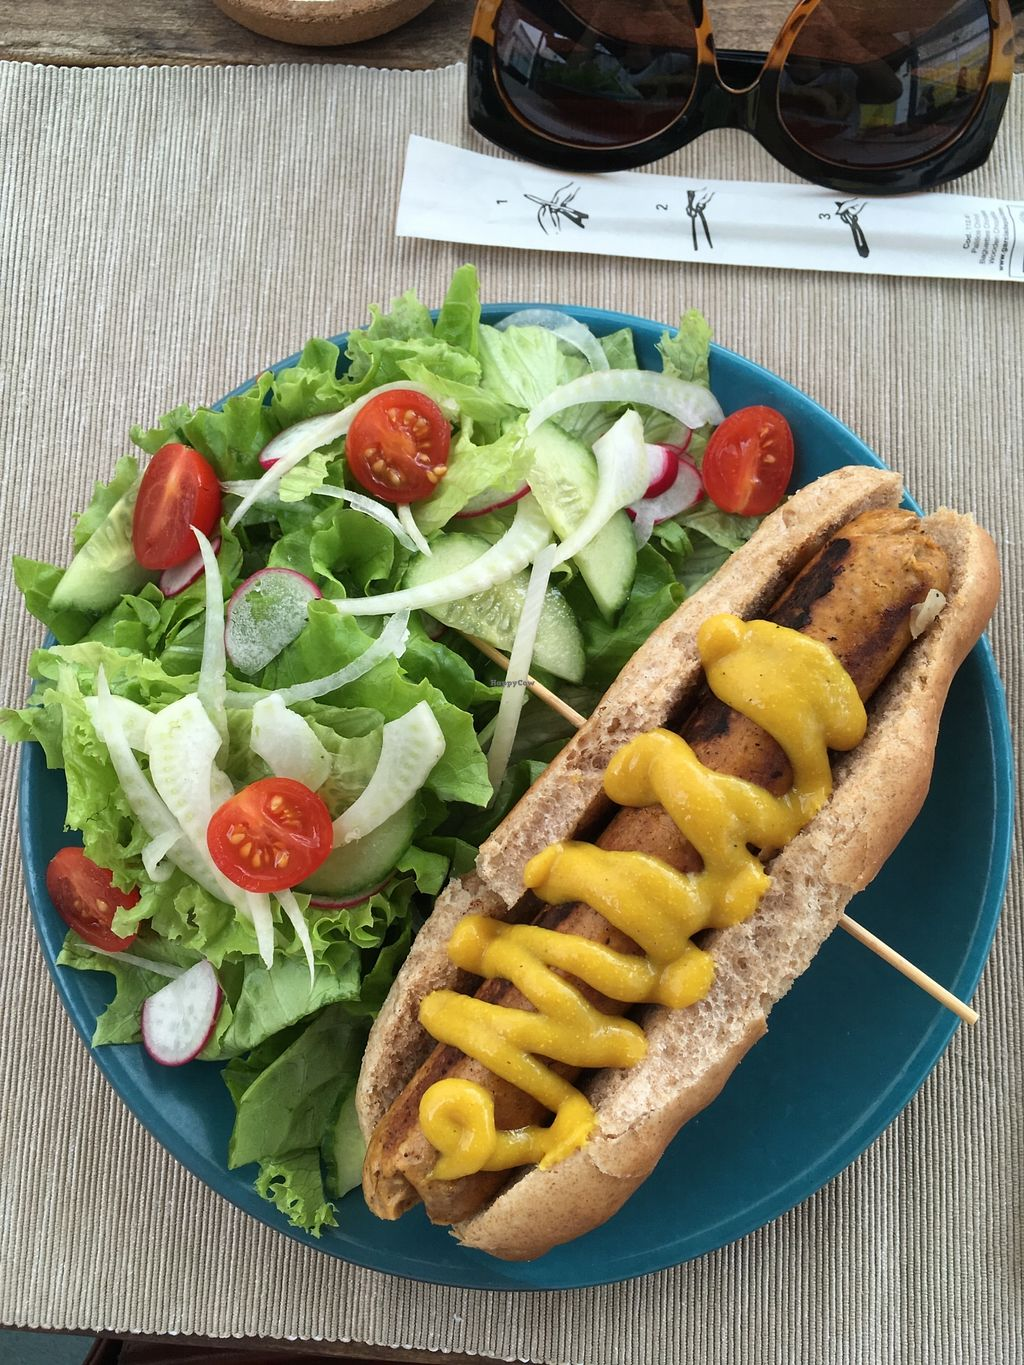 "Photo of Buenavida Vegan  by <a href=""/members/profile/Fgd"">Fgd</a> <br/>Hotdog and salad. Fennel toppings ? <br/> December 3, 2017  - <a href='/contact/abuse/image/64893/331981'>Report</a>"